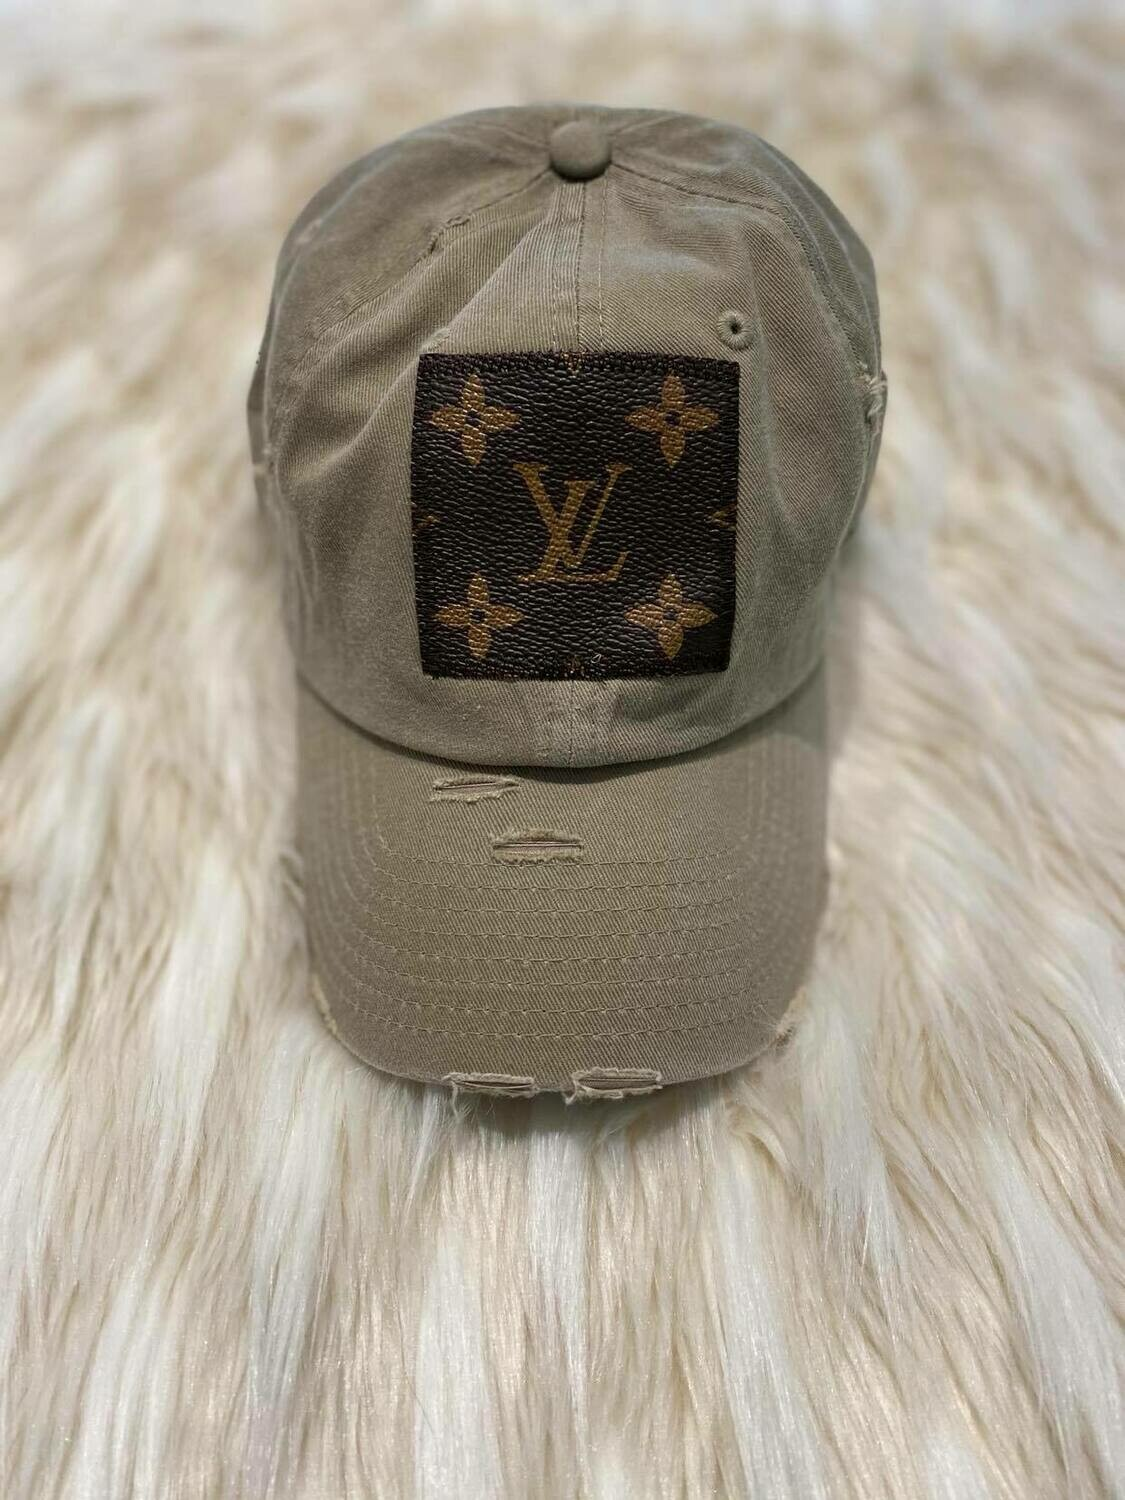 Designer LV Baseball Hat in Beige